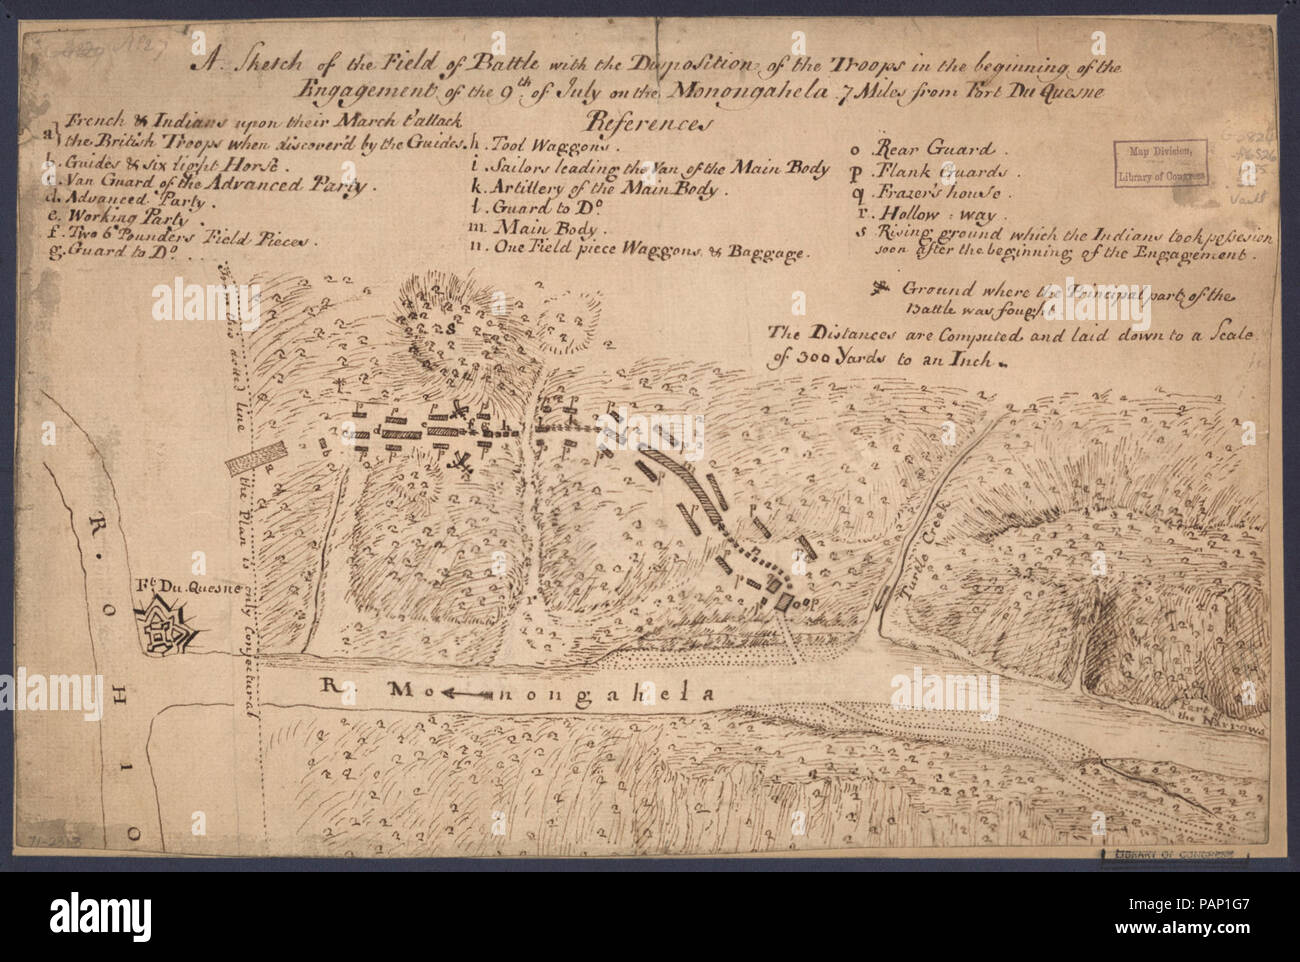 A sketch of the field of battle with the disposition of the troops in the beginning of the engagement of the 9th of July on the Monongahela 7 miles from Fort Du Quesne. - Stock Image